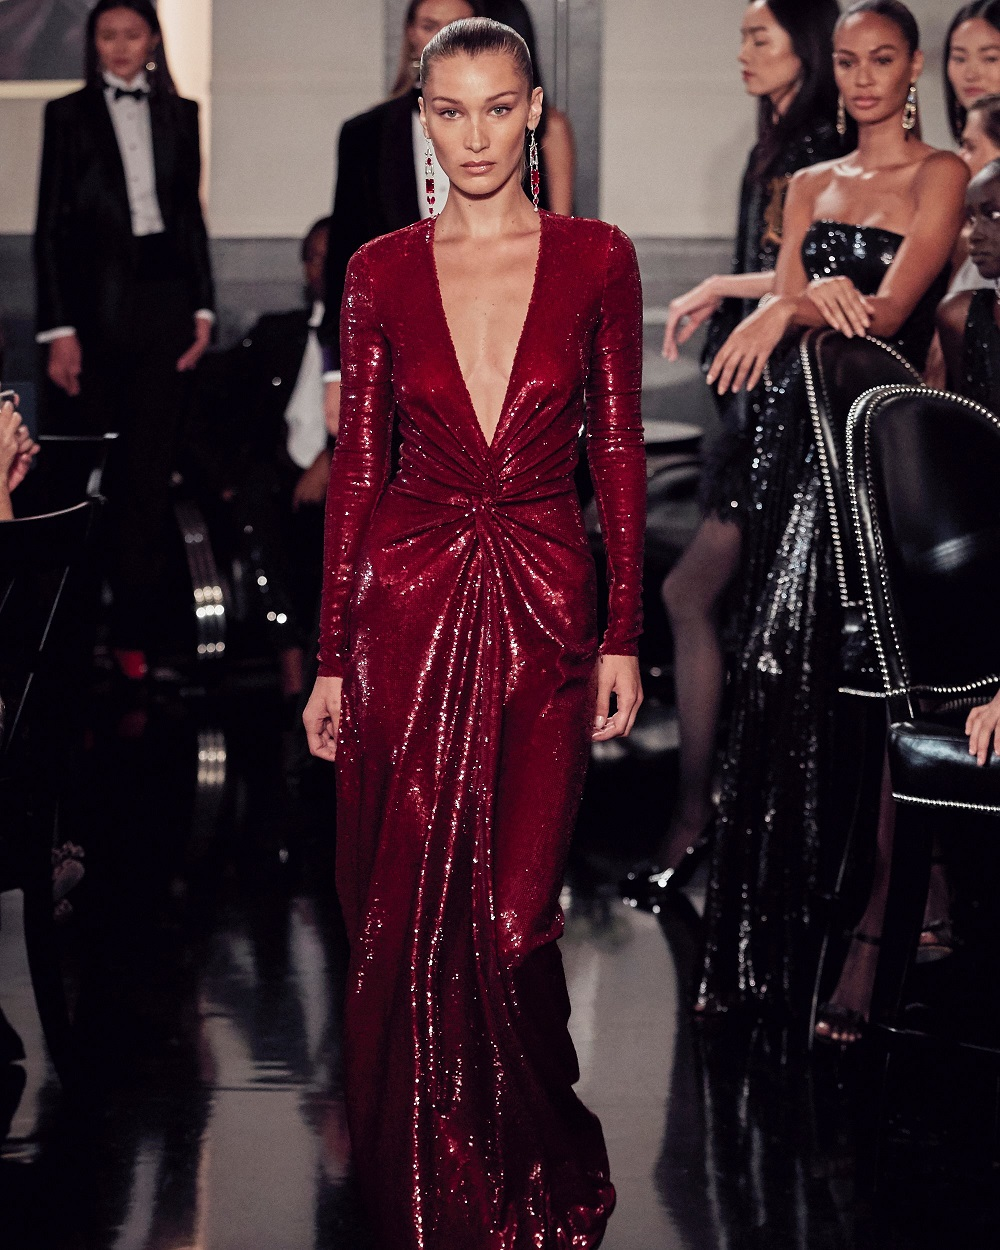 Bella Hadid at #RalphsClub in a Fall 2019 dress with micro-crystals and a bias-twist detail